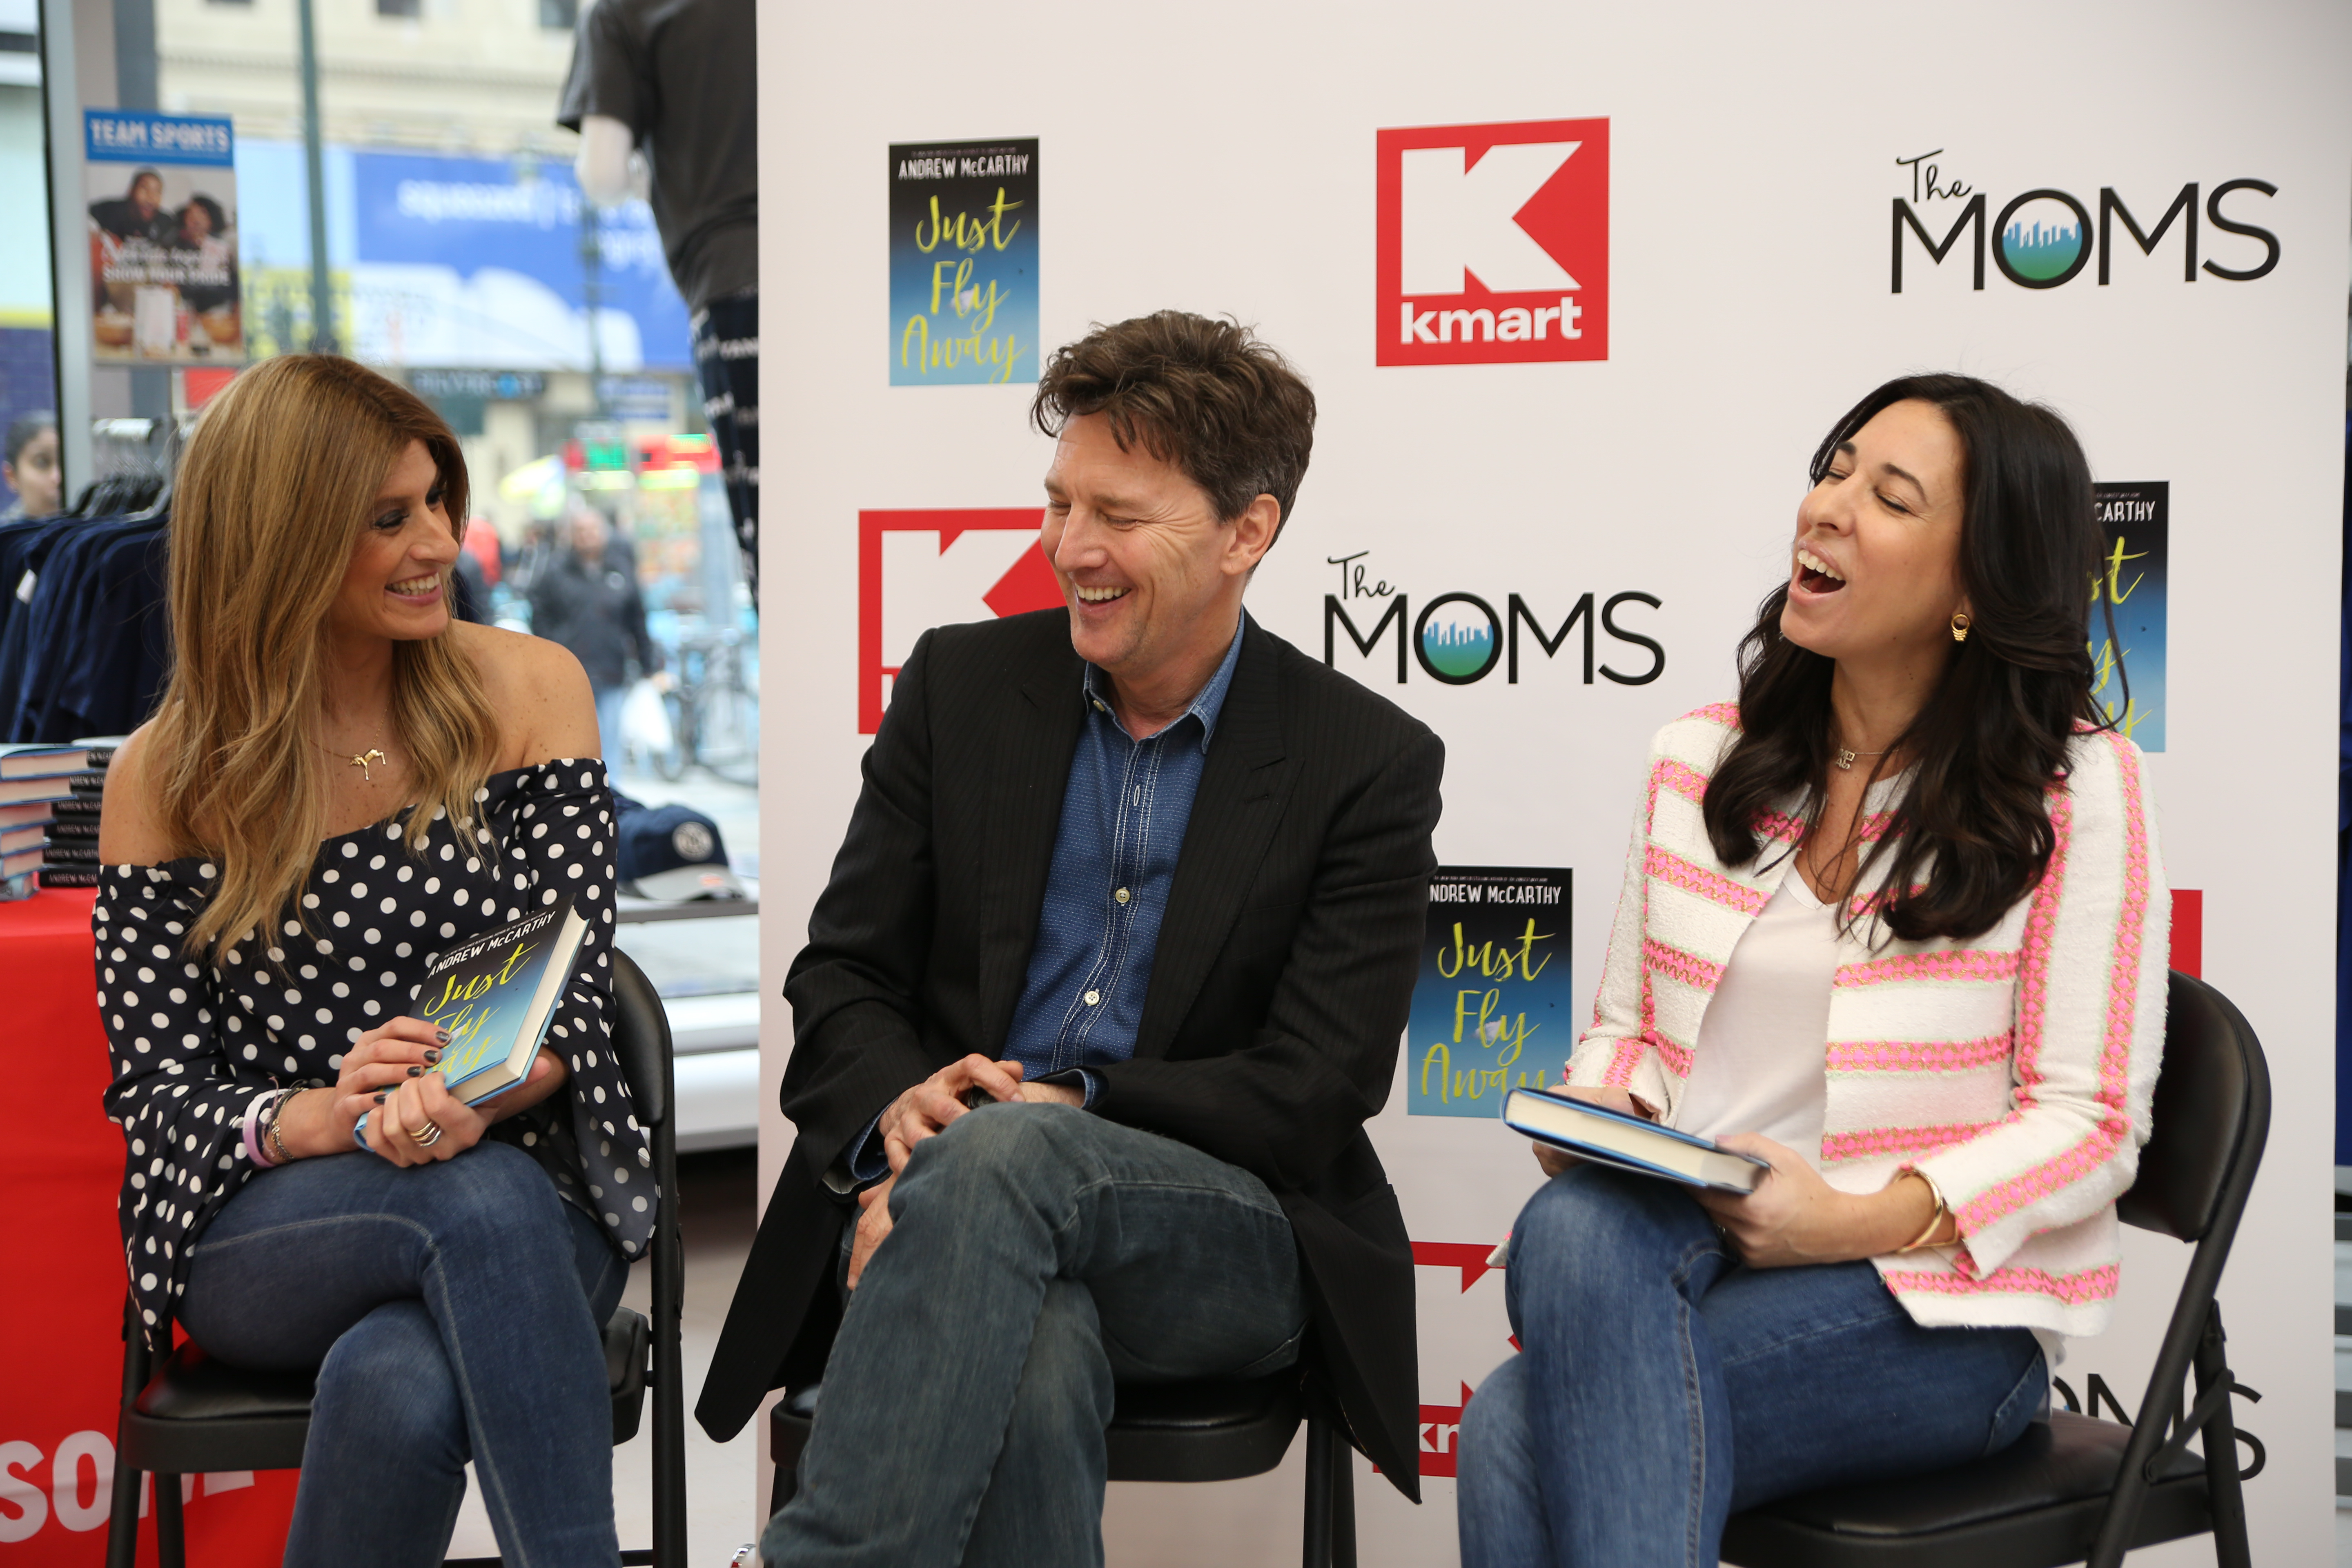 A Minute With The MOMS: Andrew McCarthy